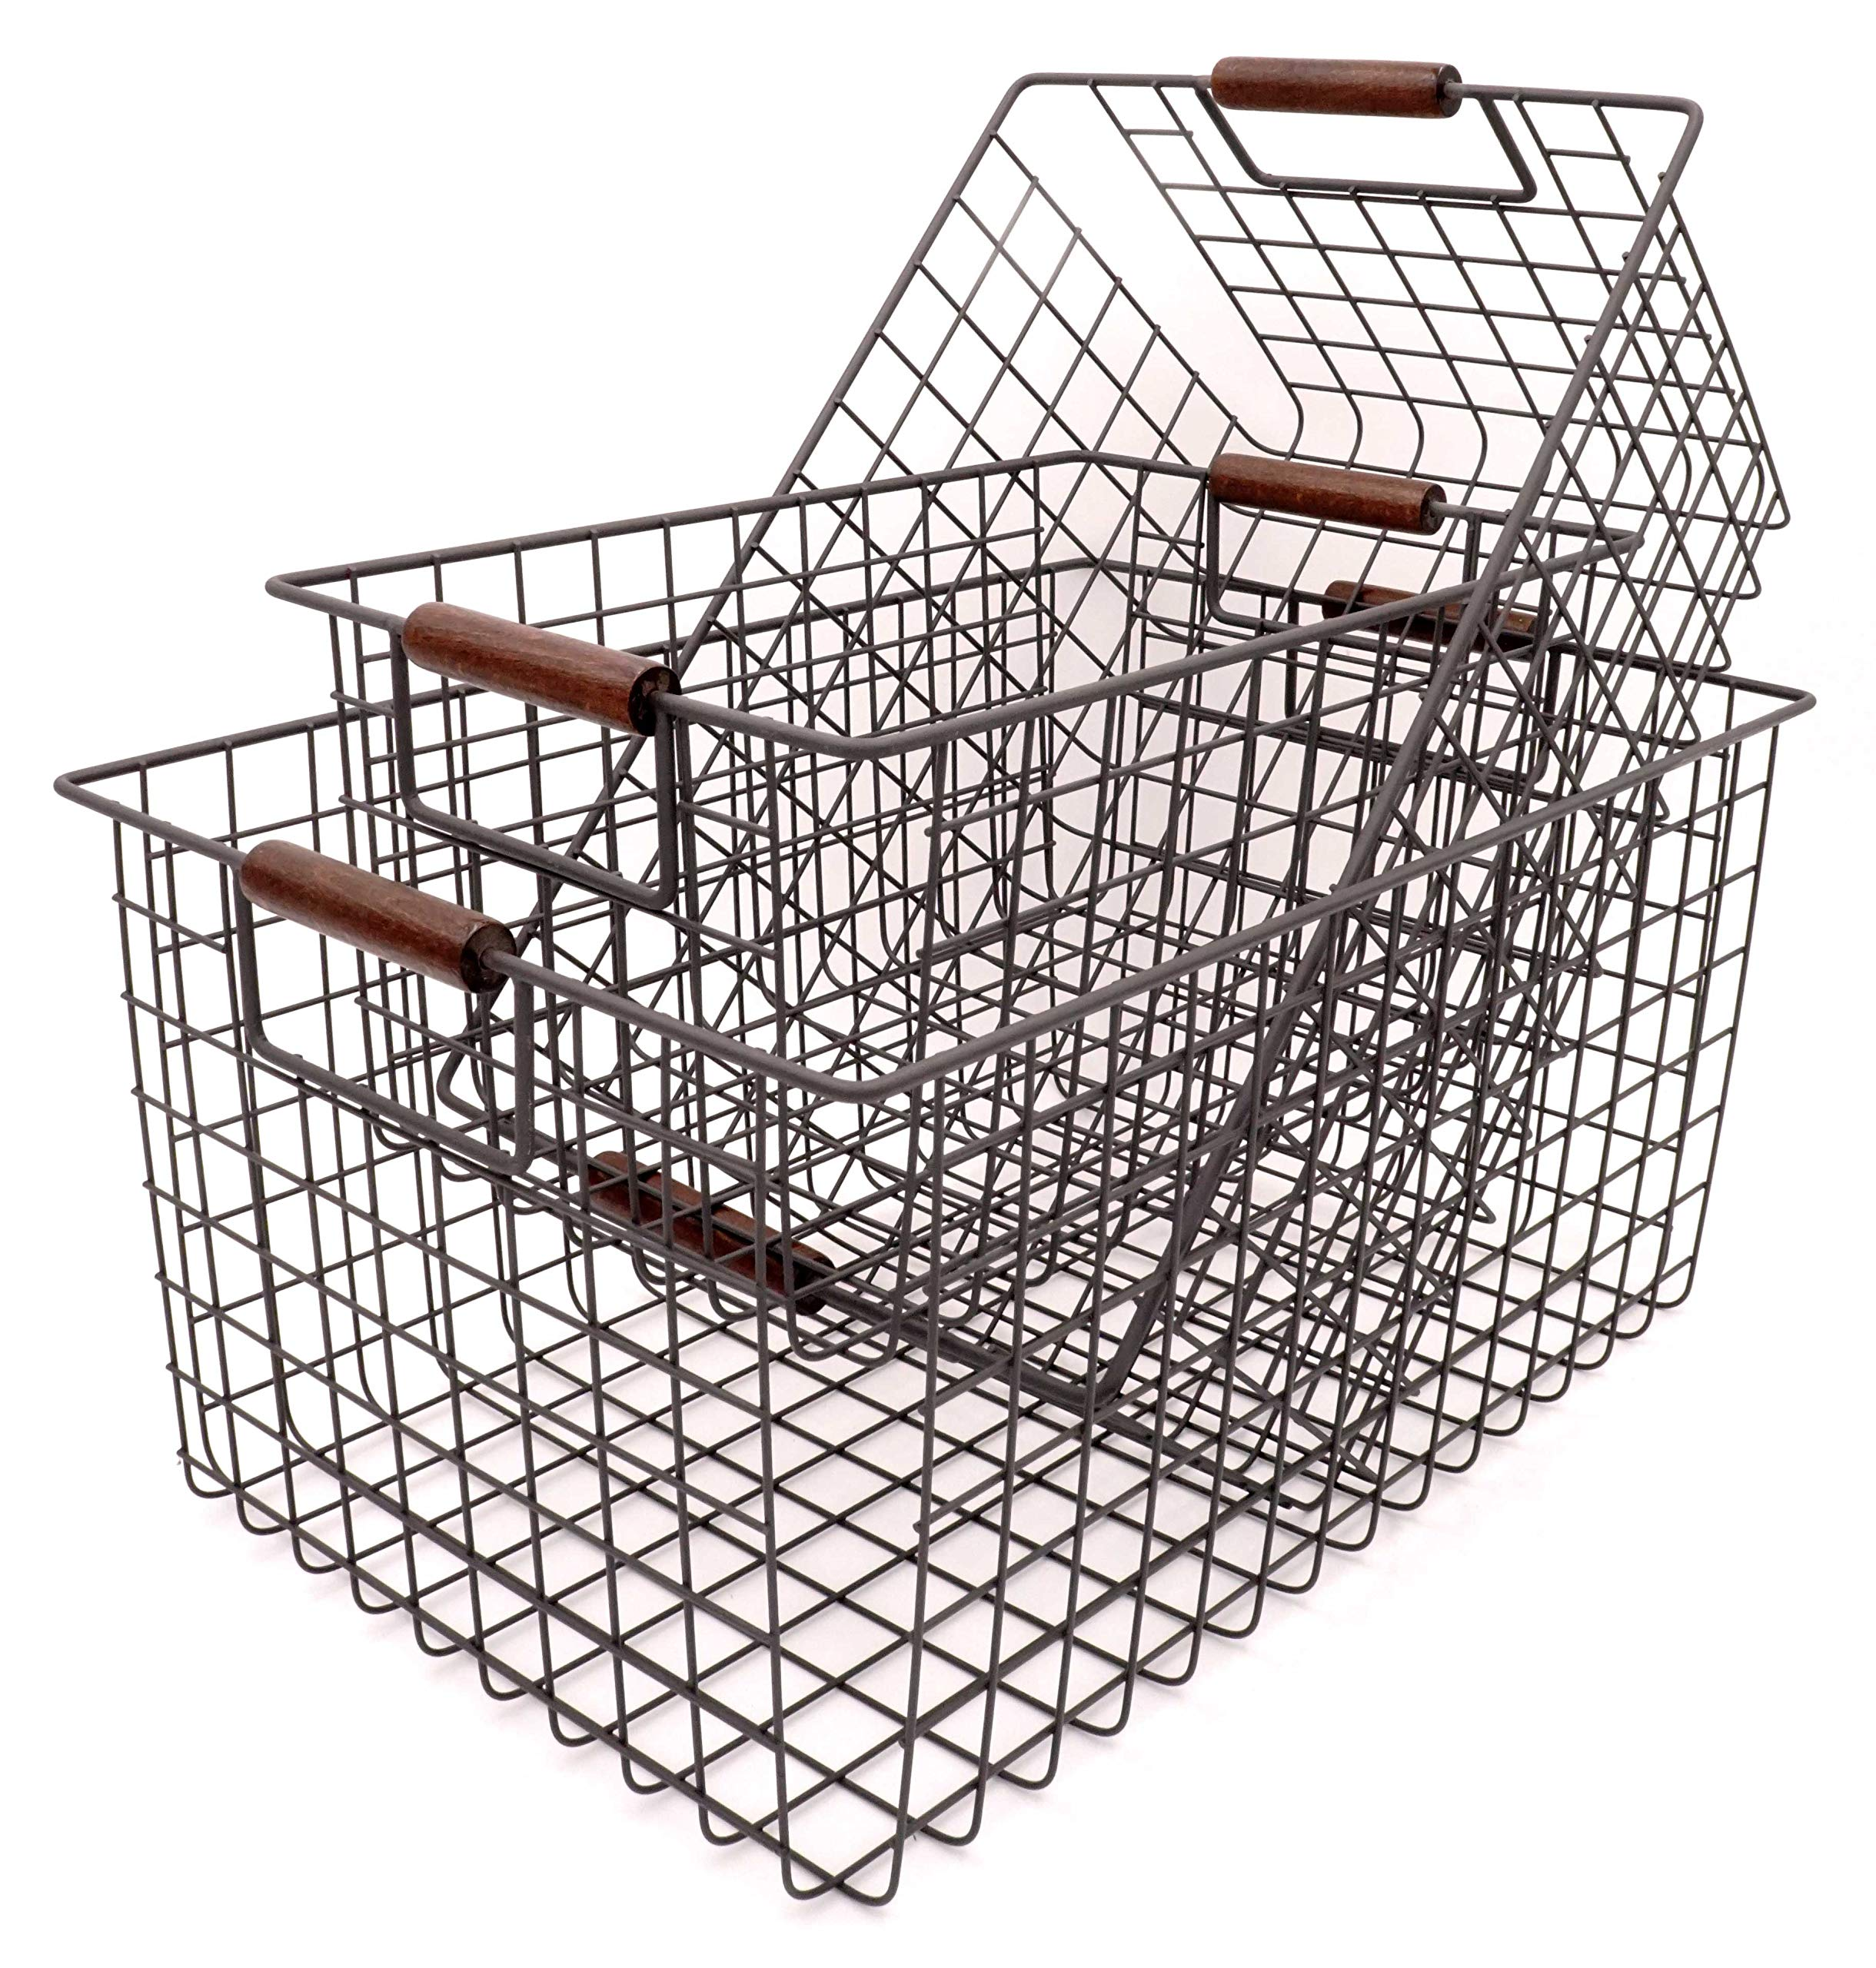 KeKaBox Set of 3 Metal Wire Nesting Storage Baskets with Wood Handles by KeKaBox (Image #1)